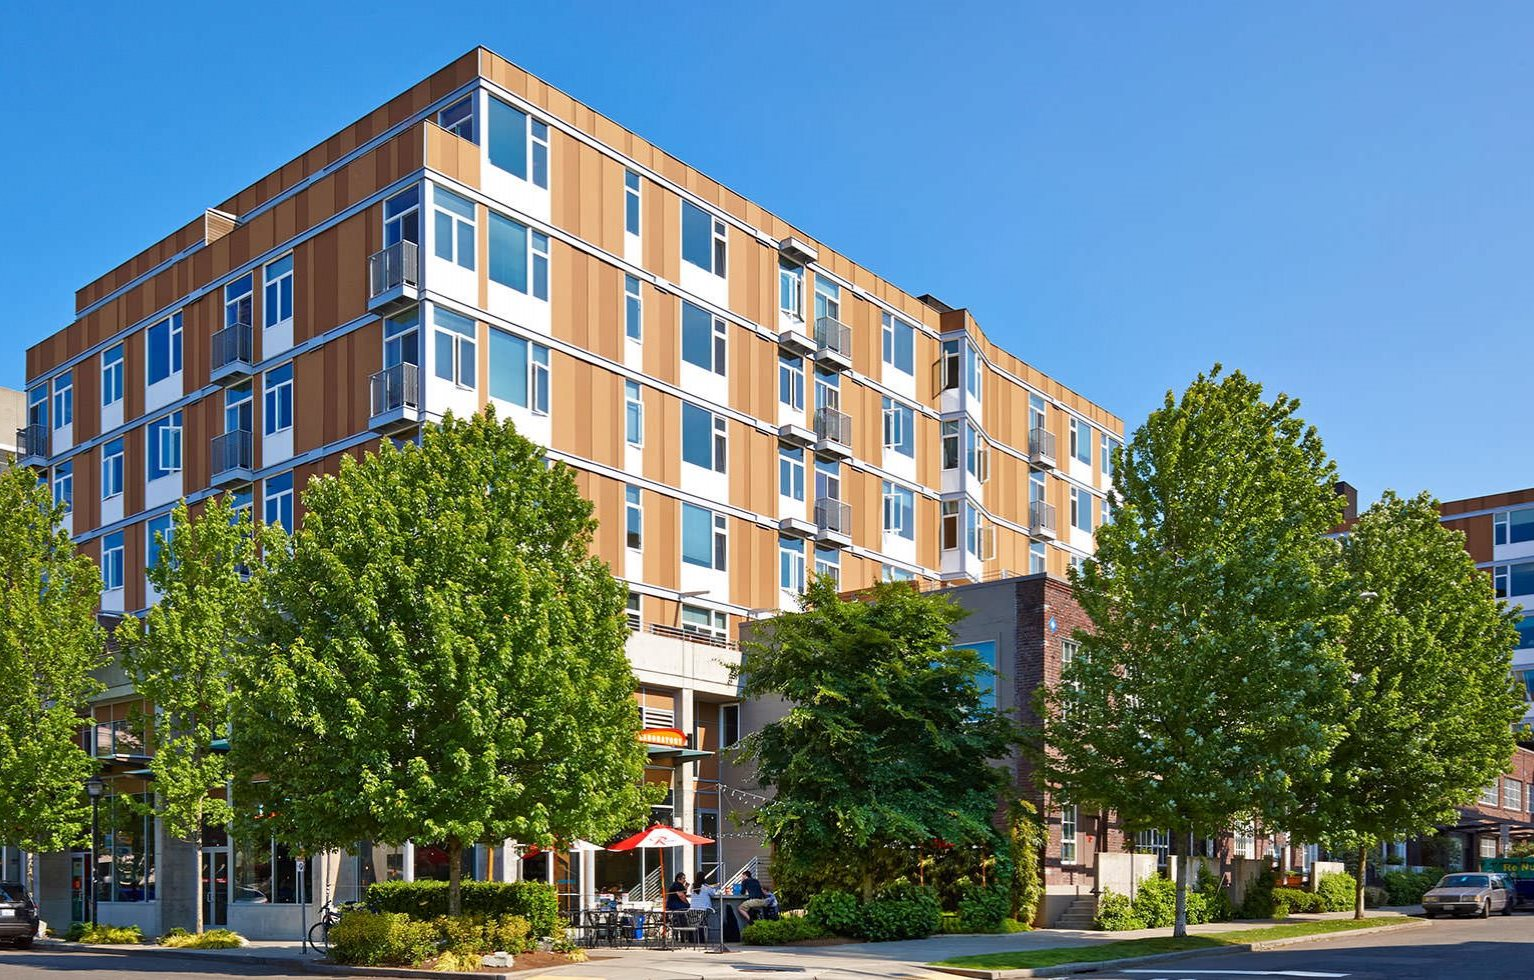 The Jacobson Company Acquires 172-Unit Mid-Rise Apartment Community in Seattle's Vibrant South Lake Union Neighborhood